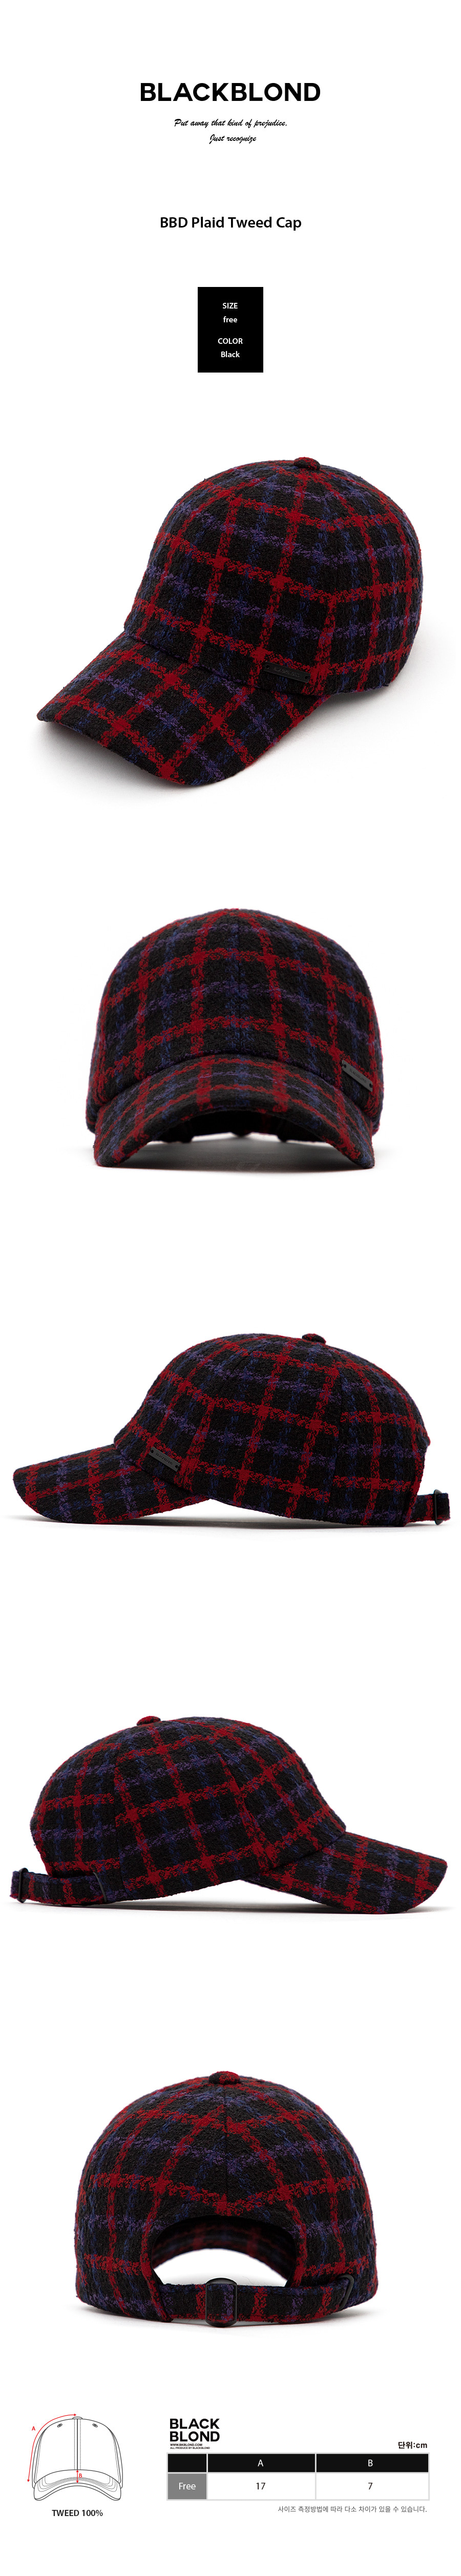 BLACKBLOND - BBD Plaid Tweed Cap (Black)